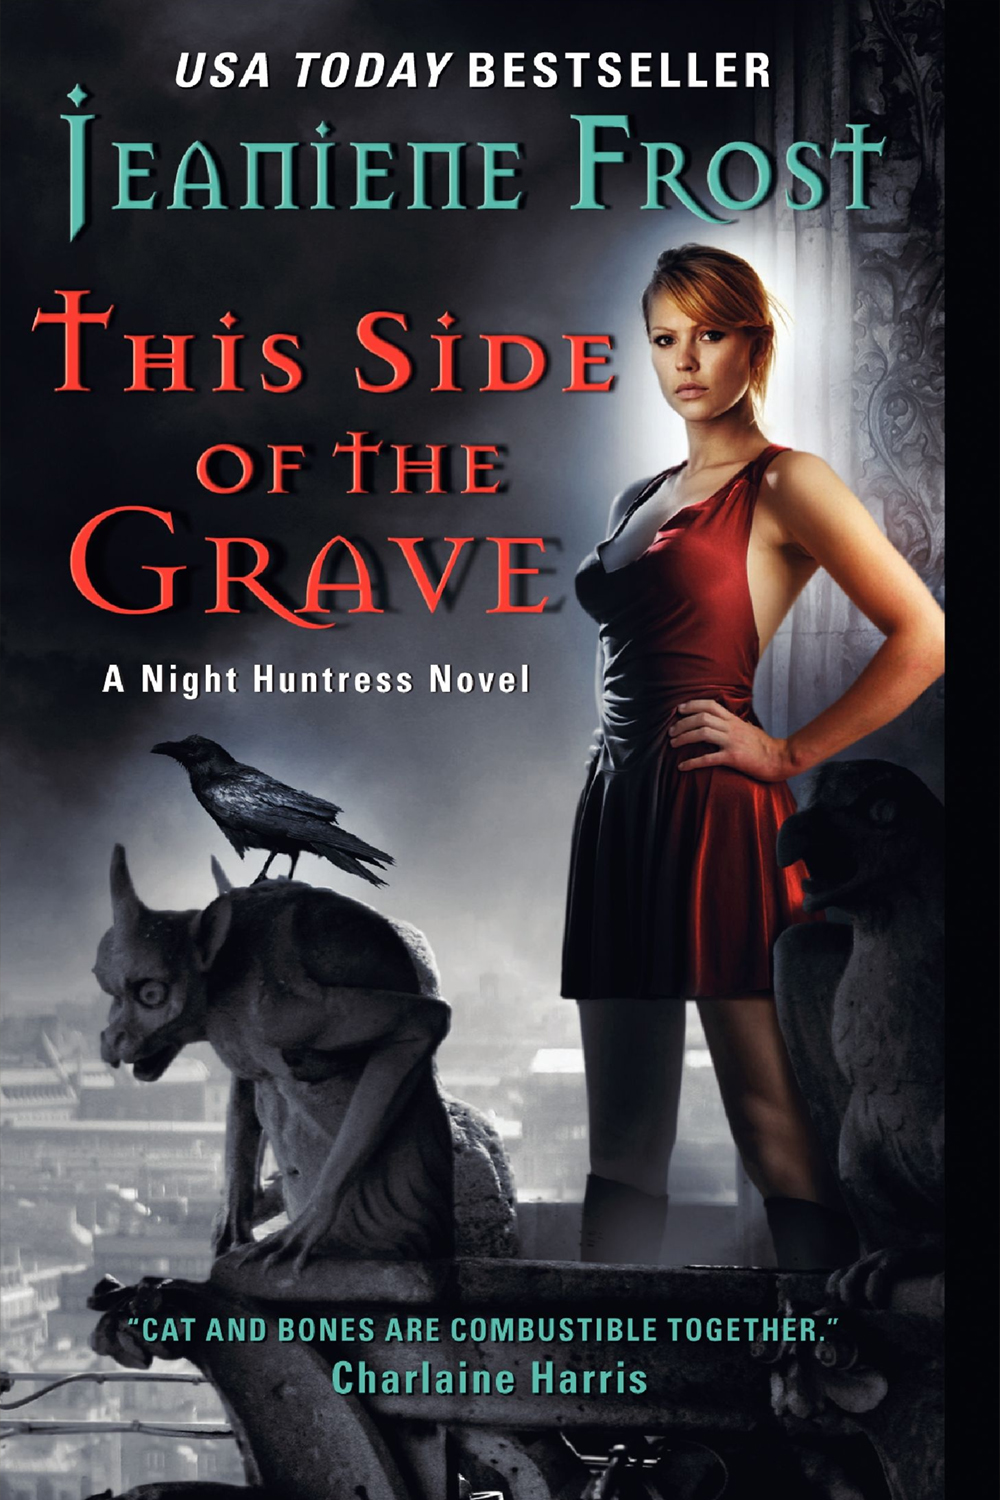 S1 E14 This Side of the Grave by Jeaniene Frost